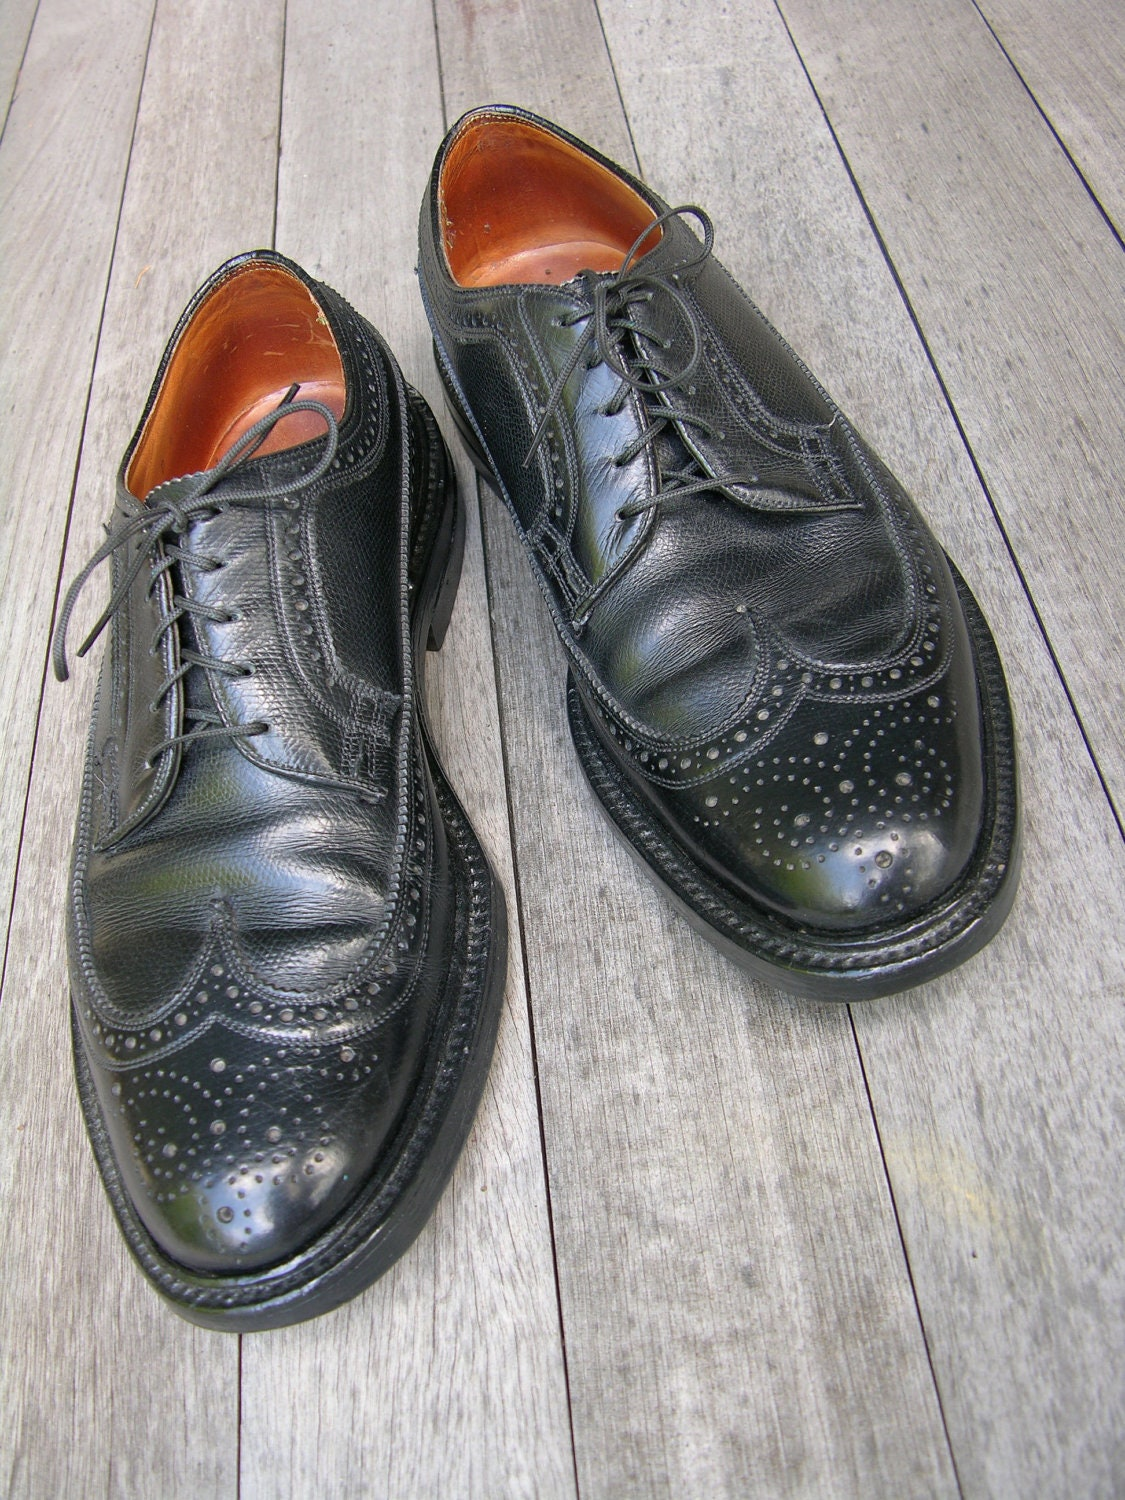 Florsheim Brogue Shoes The Shoe...vintage Florsheim